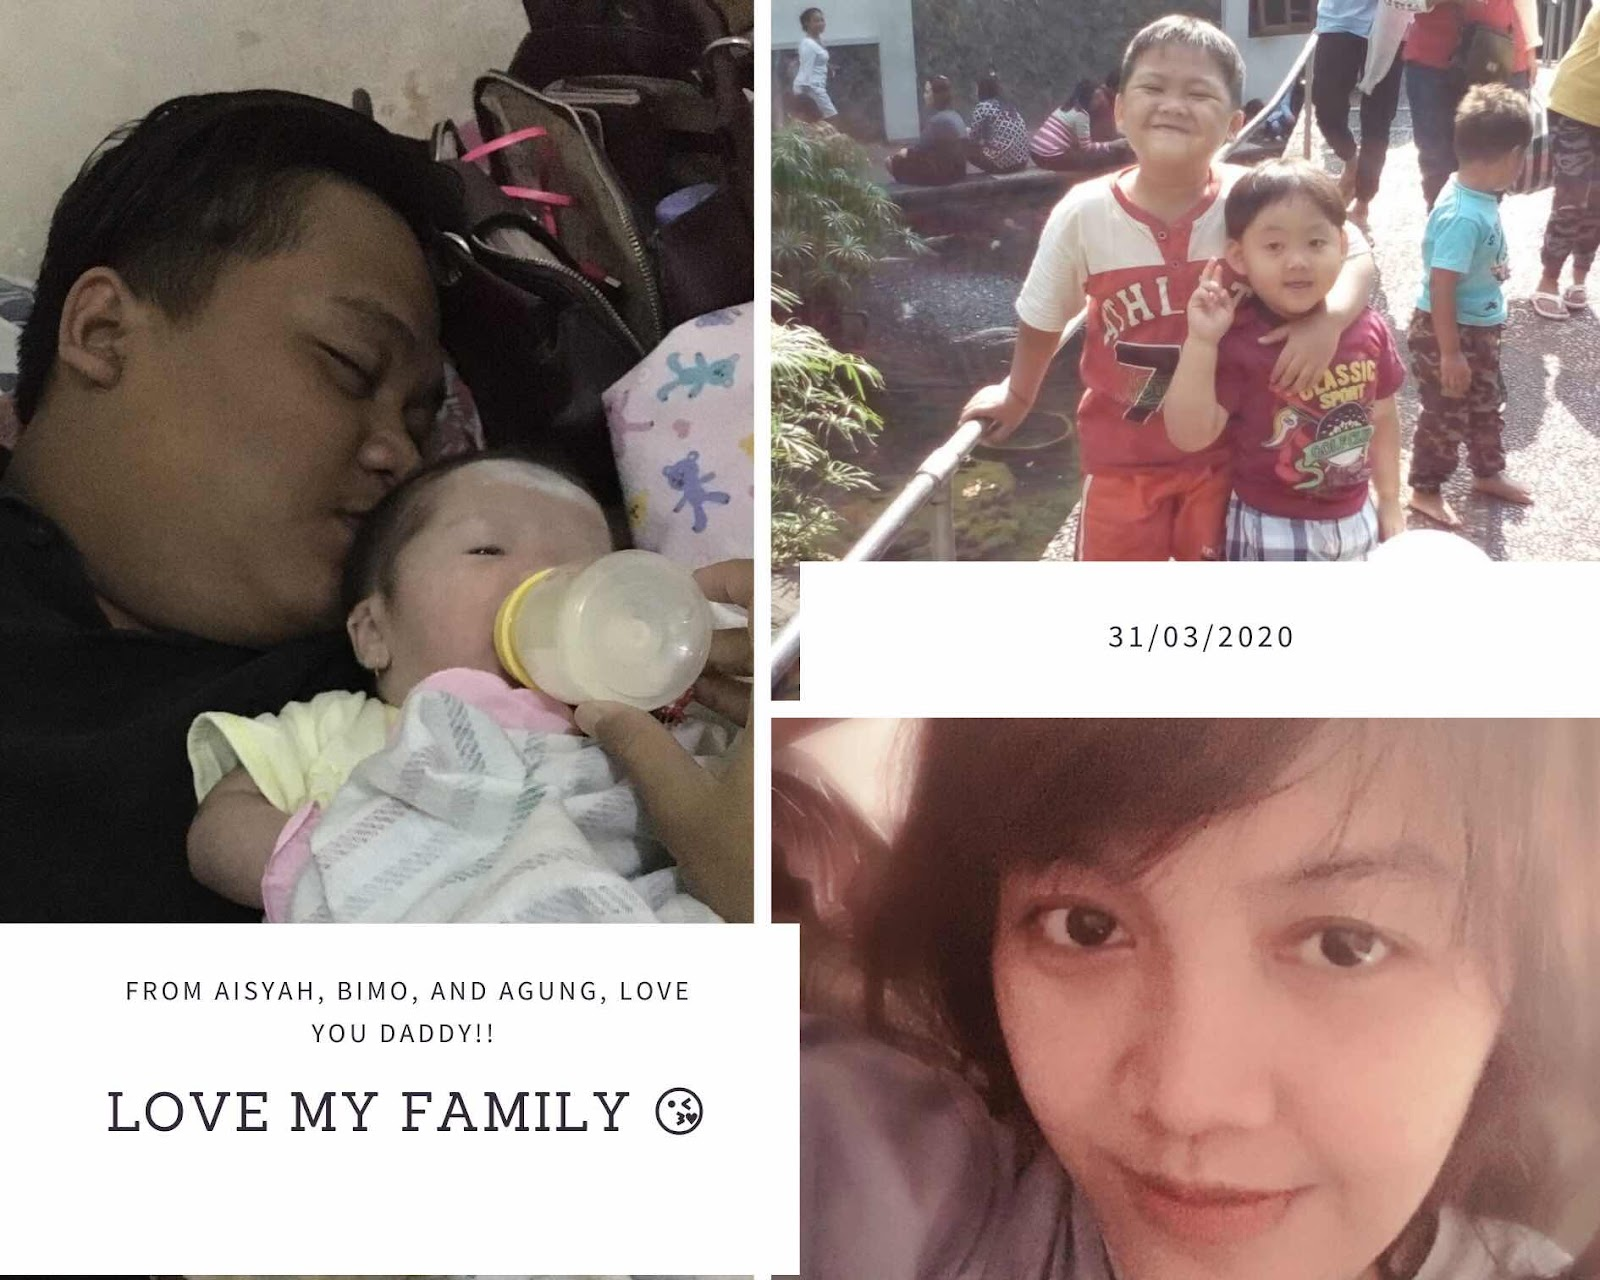 Me and My Beloved Family